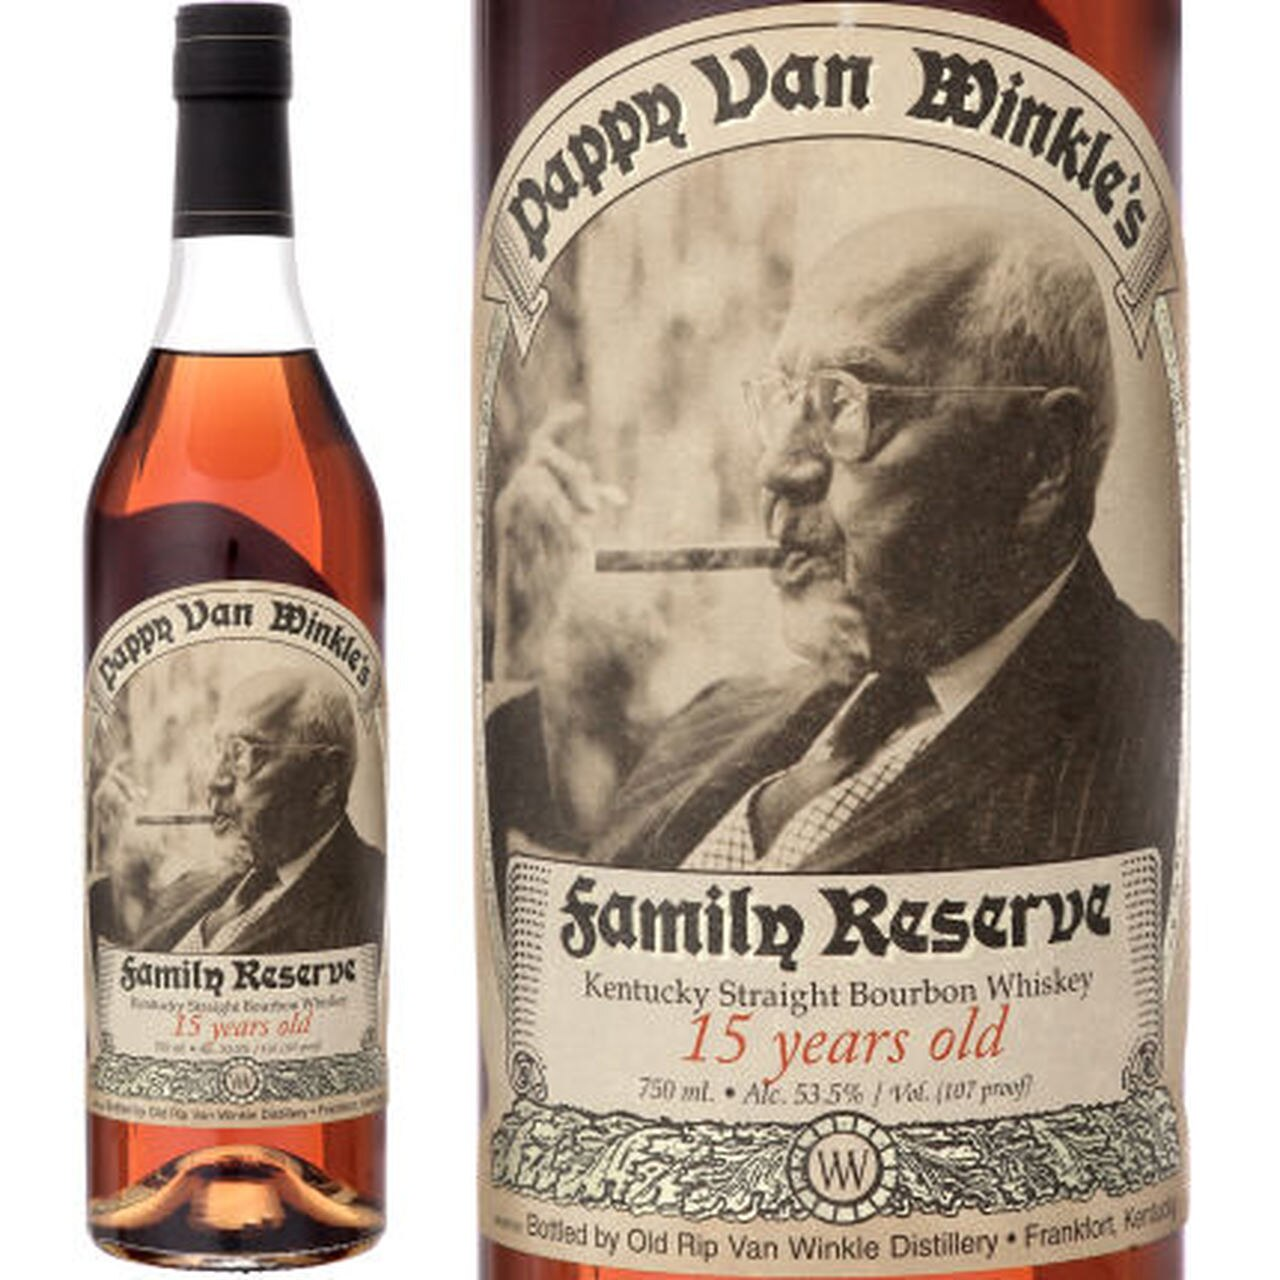 Pappy Van Winkle Family Reserve 15 Year Old Bourbon